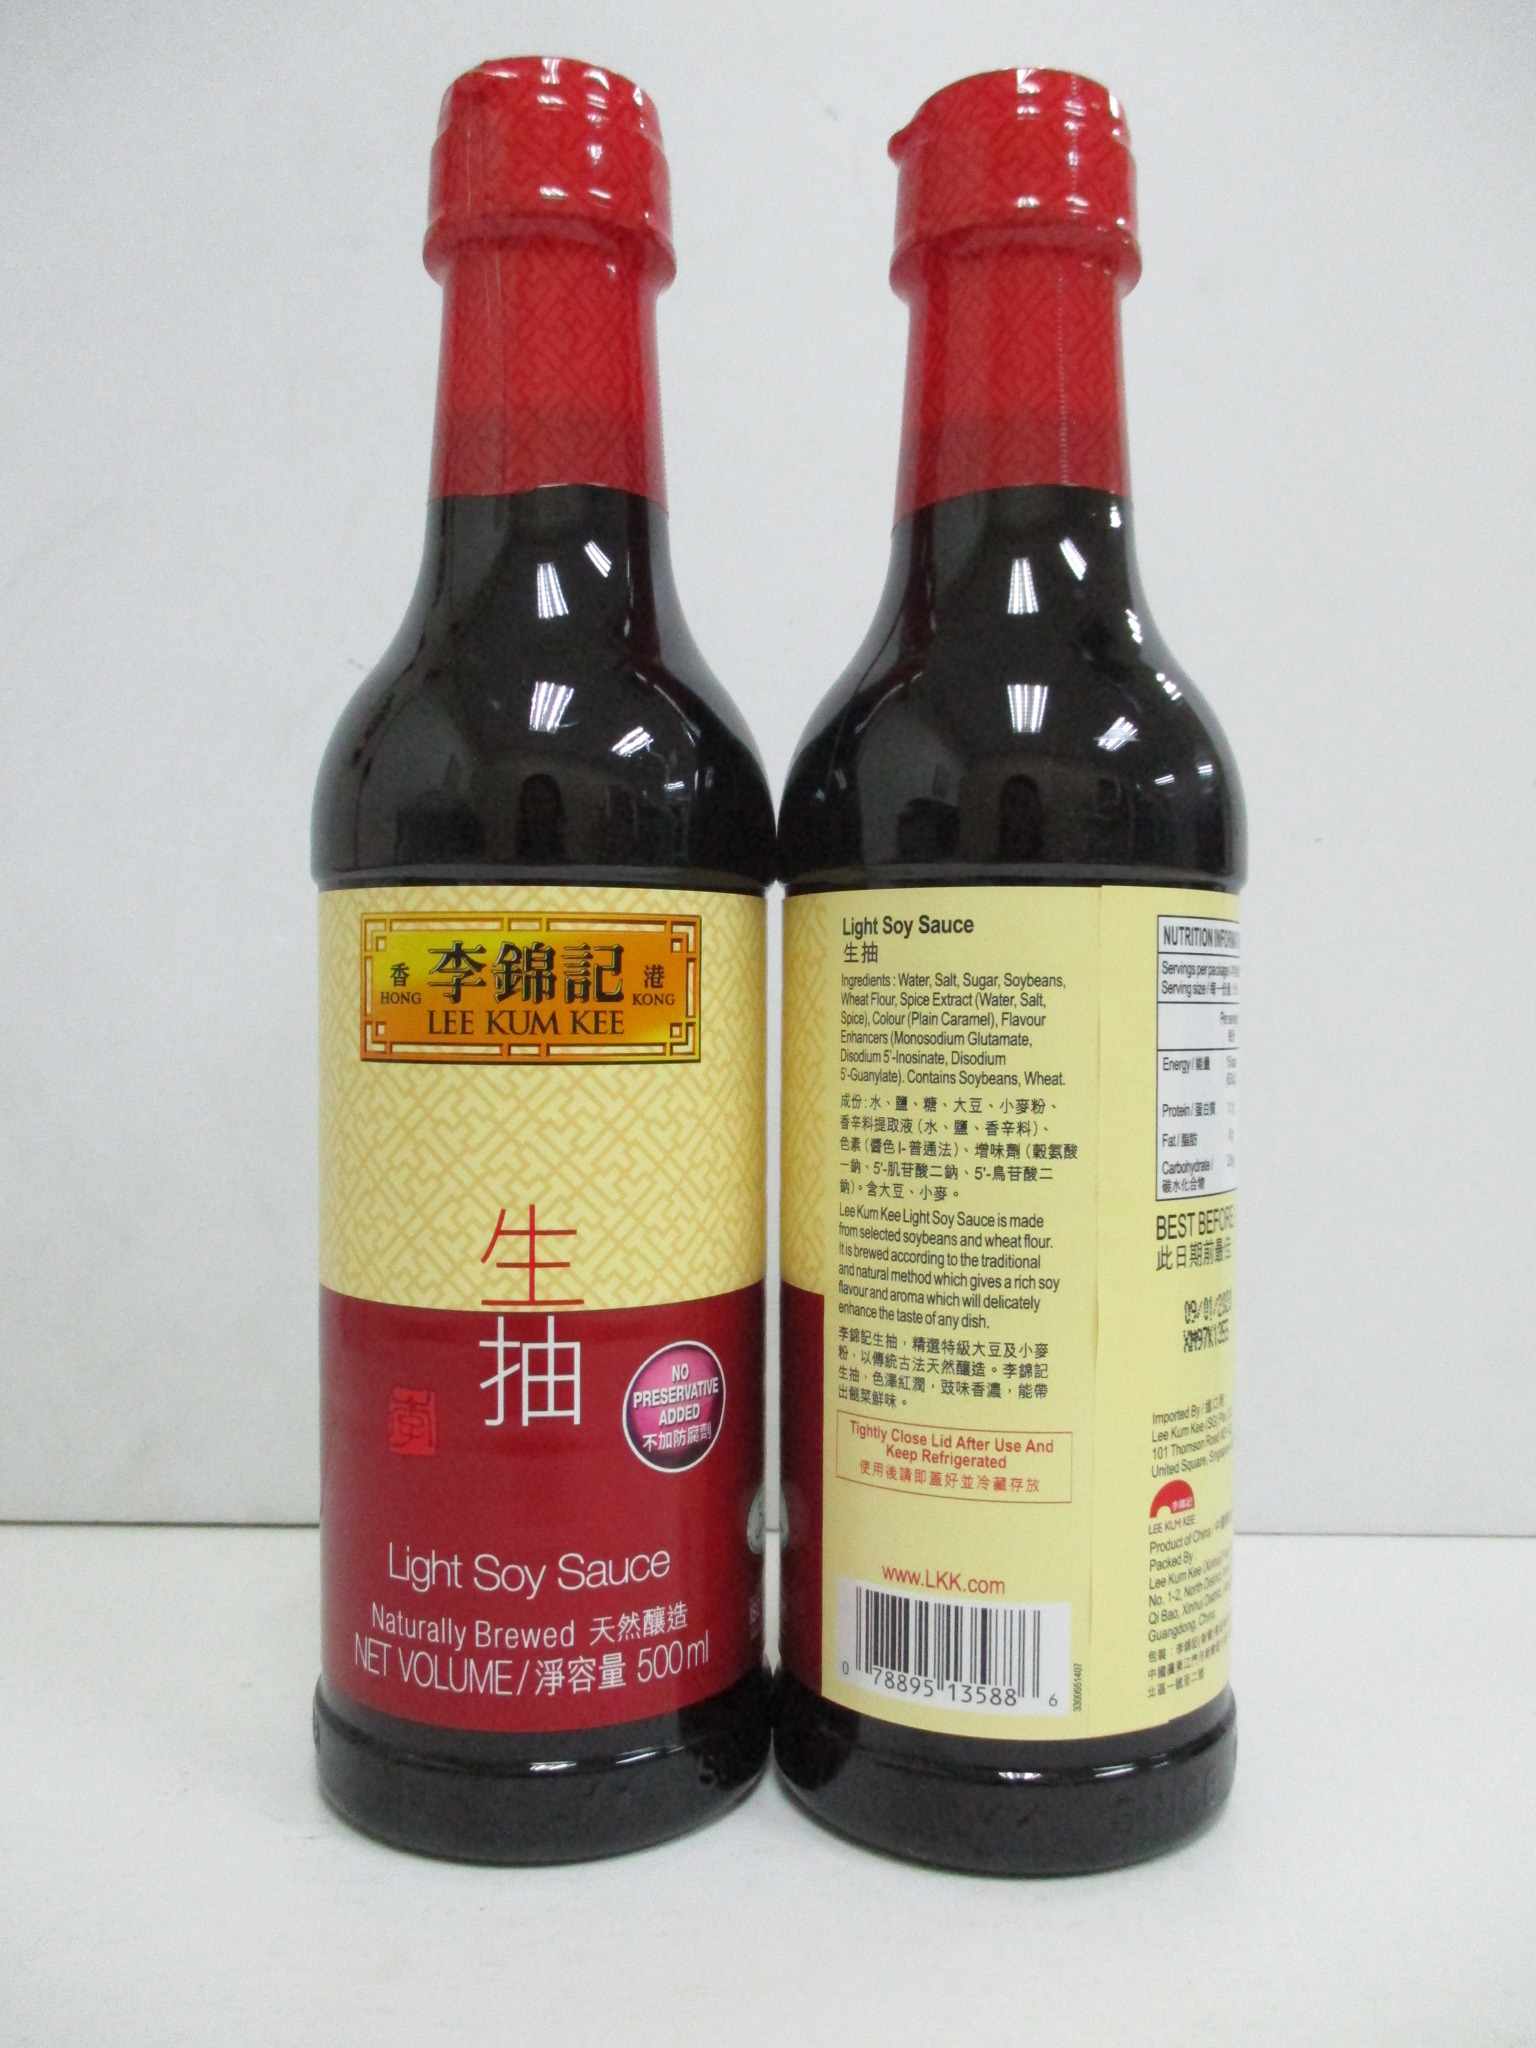 LKK Light Soy Sauce 12 x 500ml